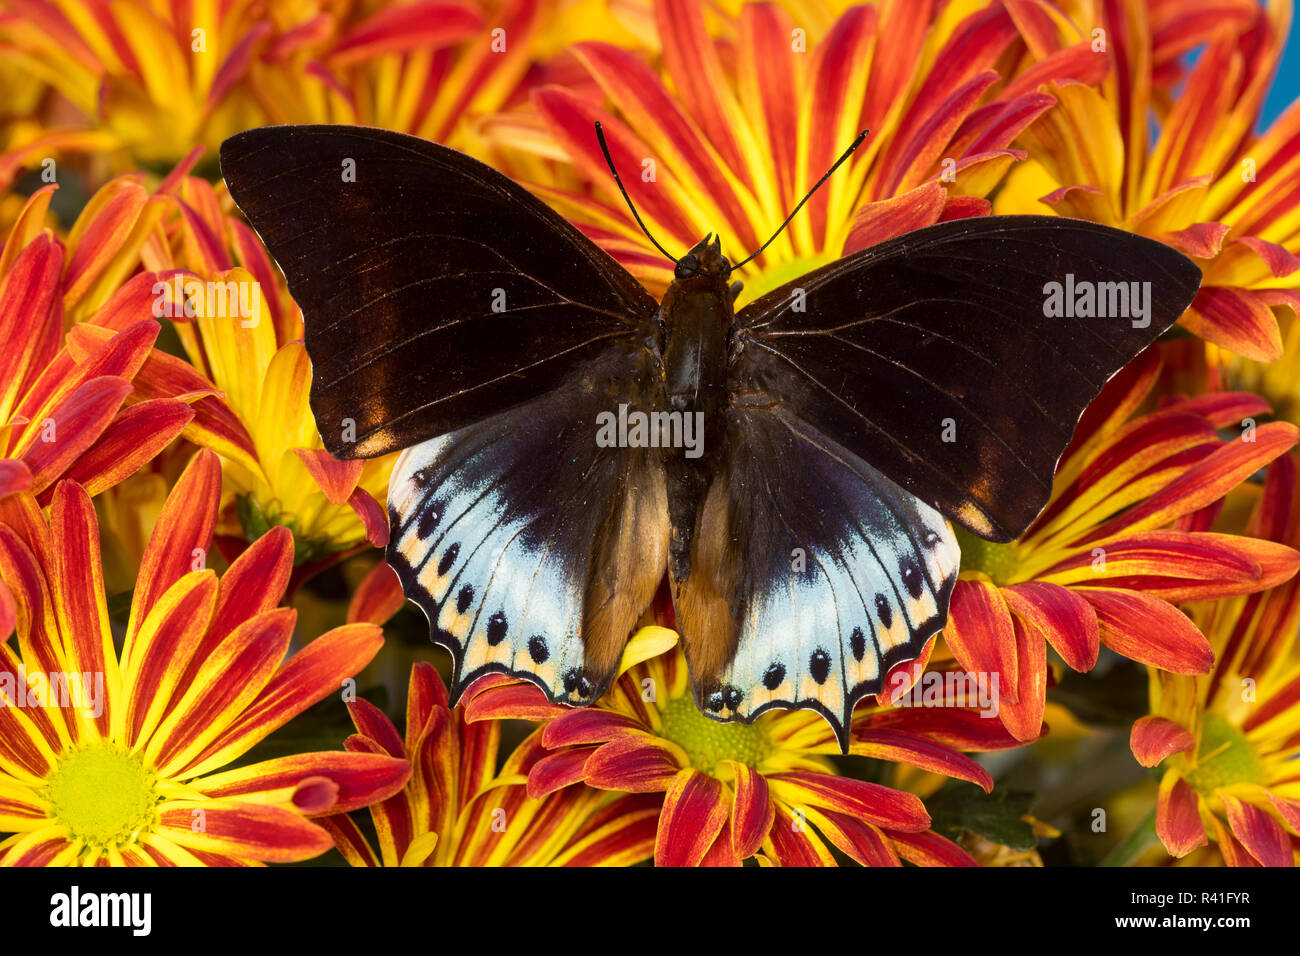 Bộ sưu tập cánh vẩy 4 - Page 19 Tropical-butterfly-charaxes-eurialus-from-indonesia-on-mums-R41FYR